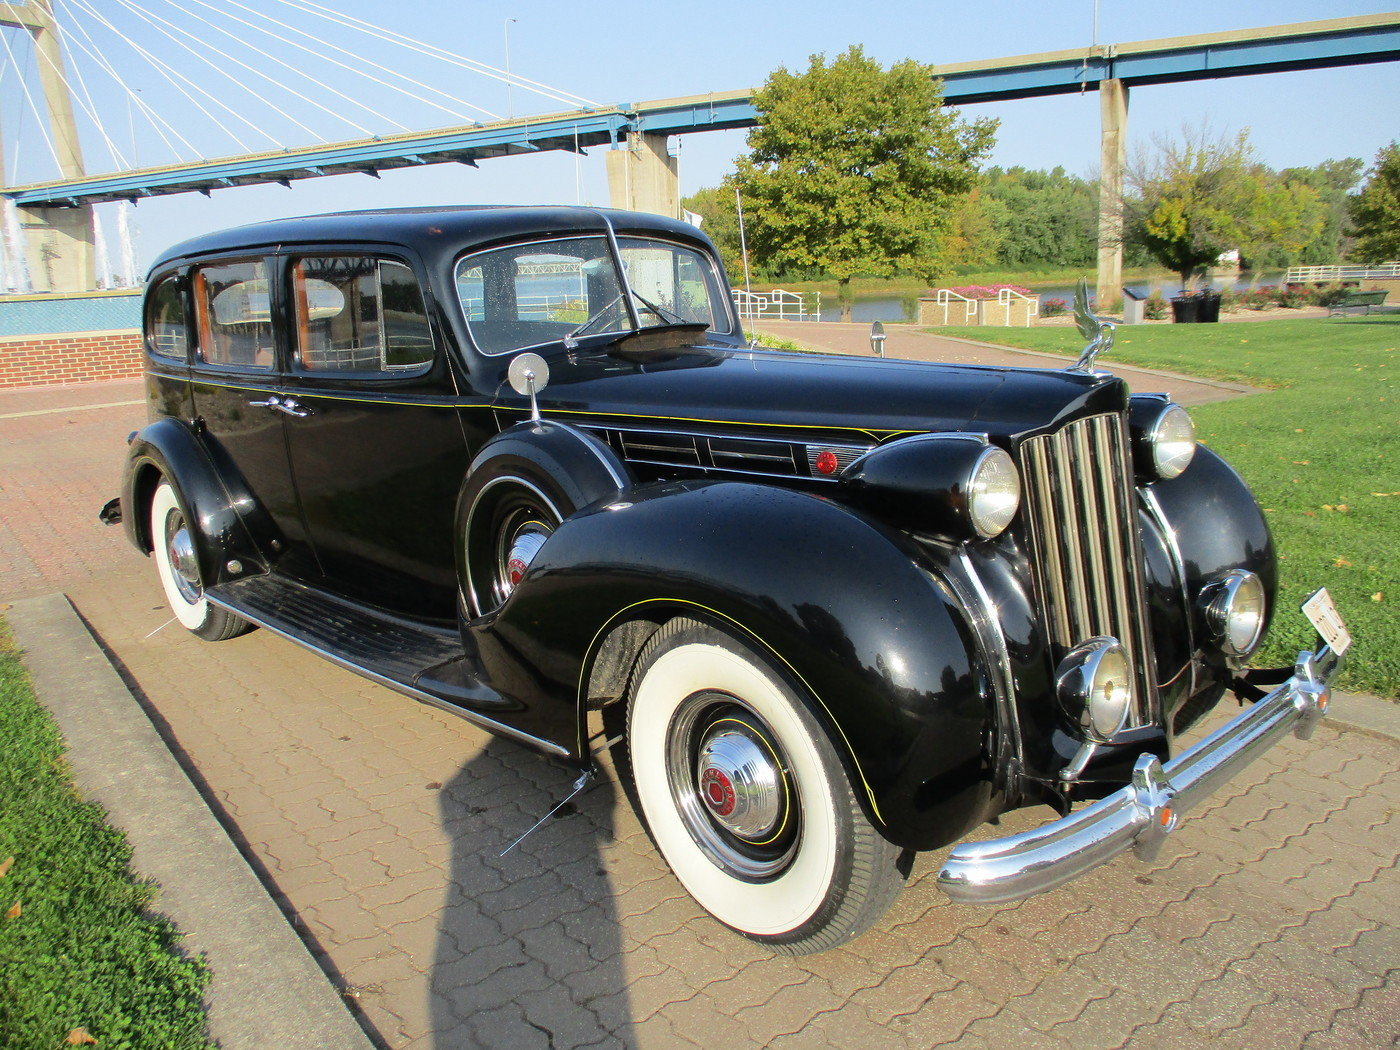 1939 Packard Model 1708 12 Cylinder Limousine For Sale (picture 2 of 12)